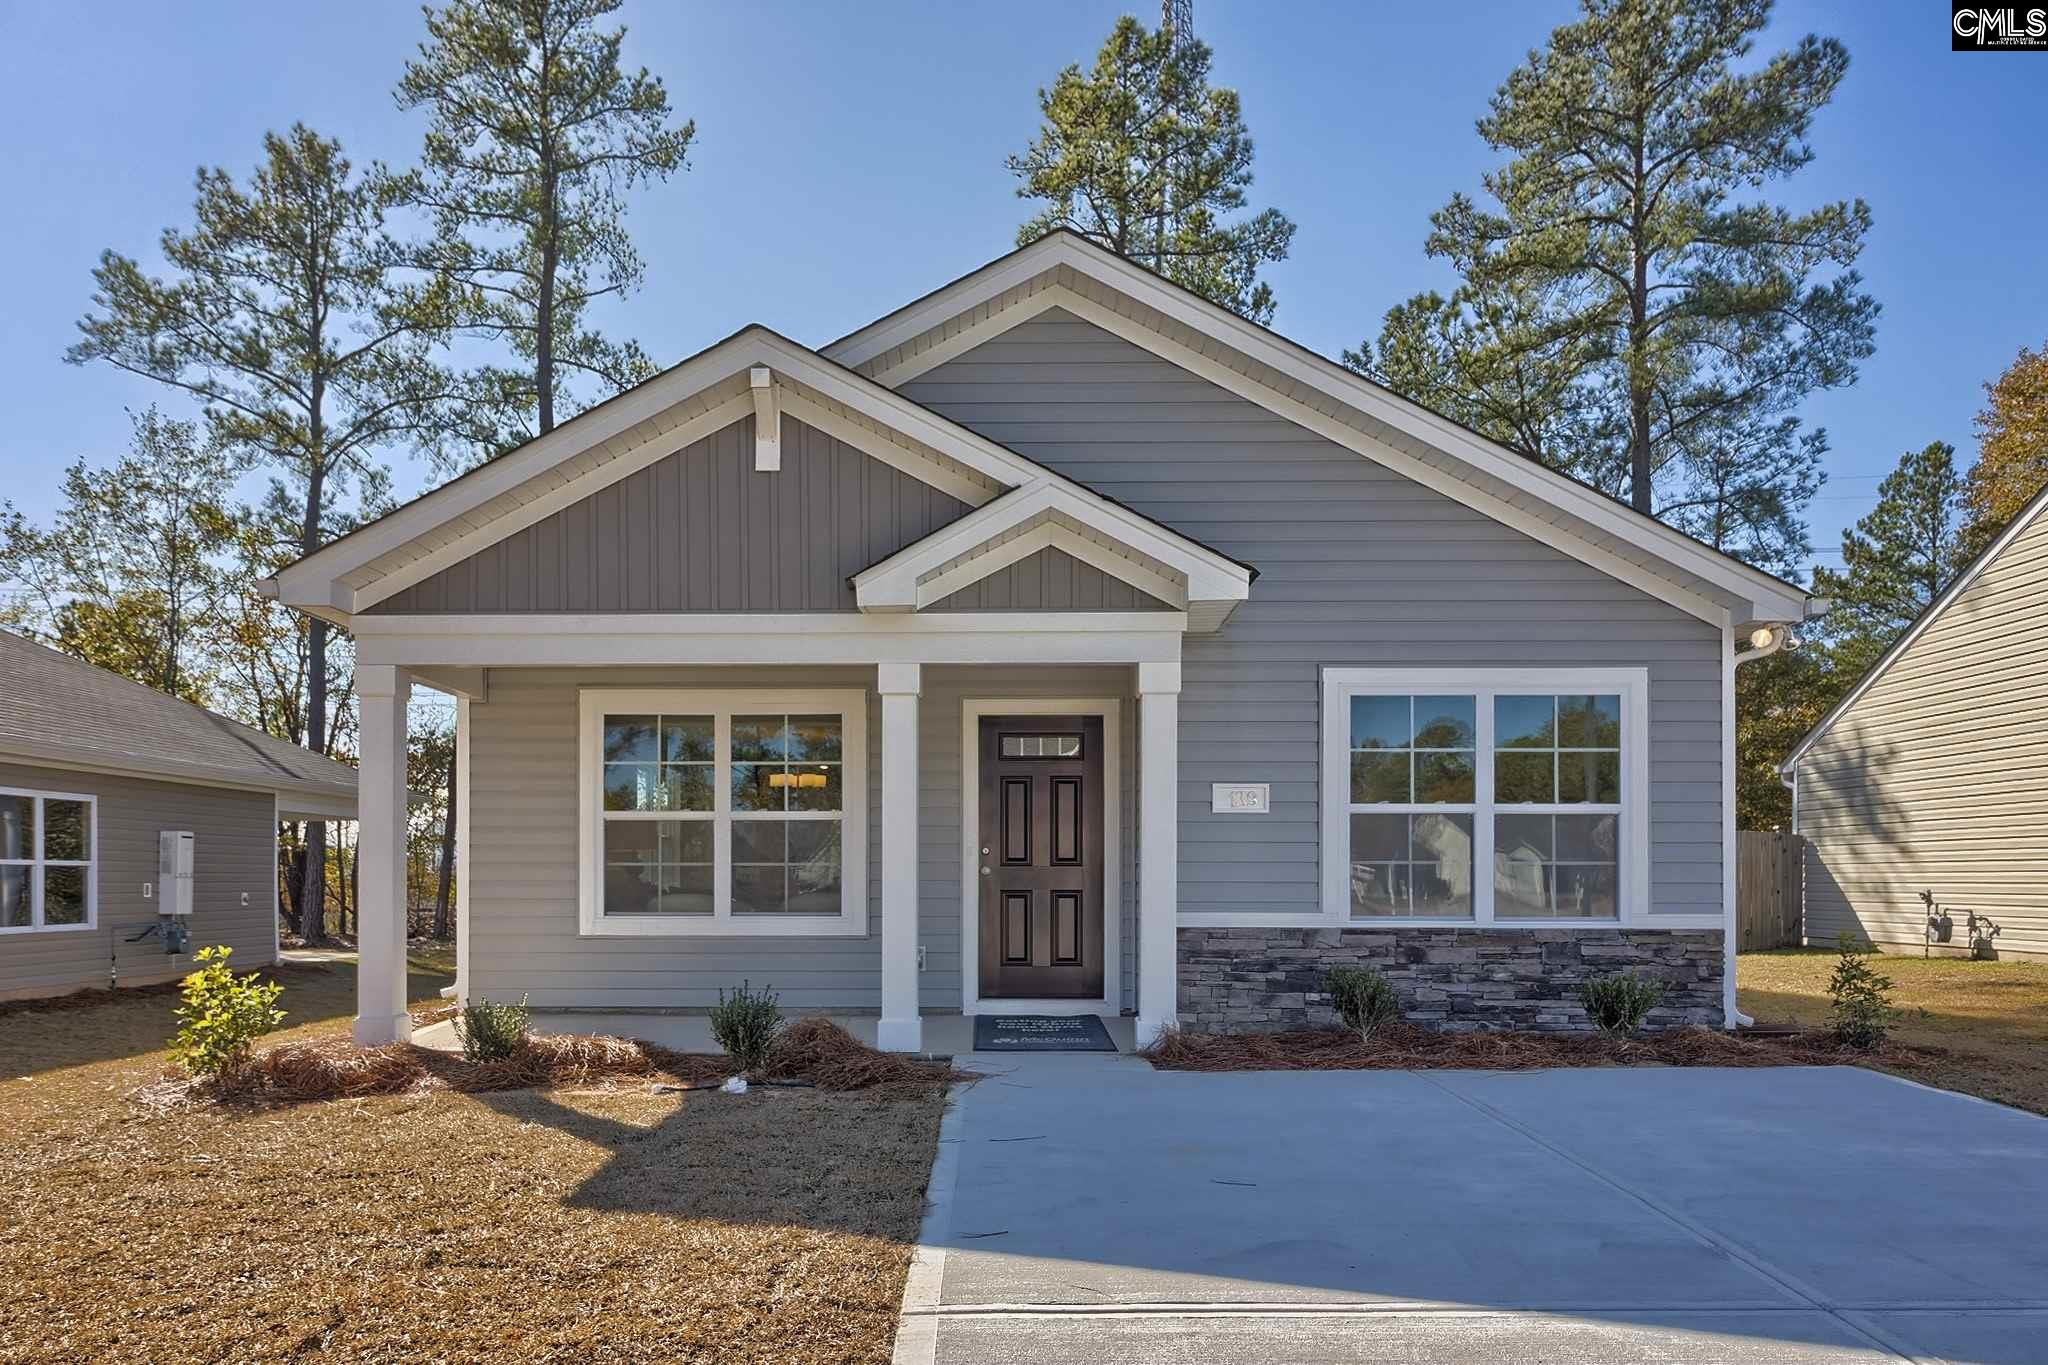 143 Weeping Willow Blythewood, SC 29016